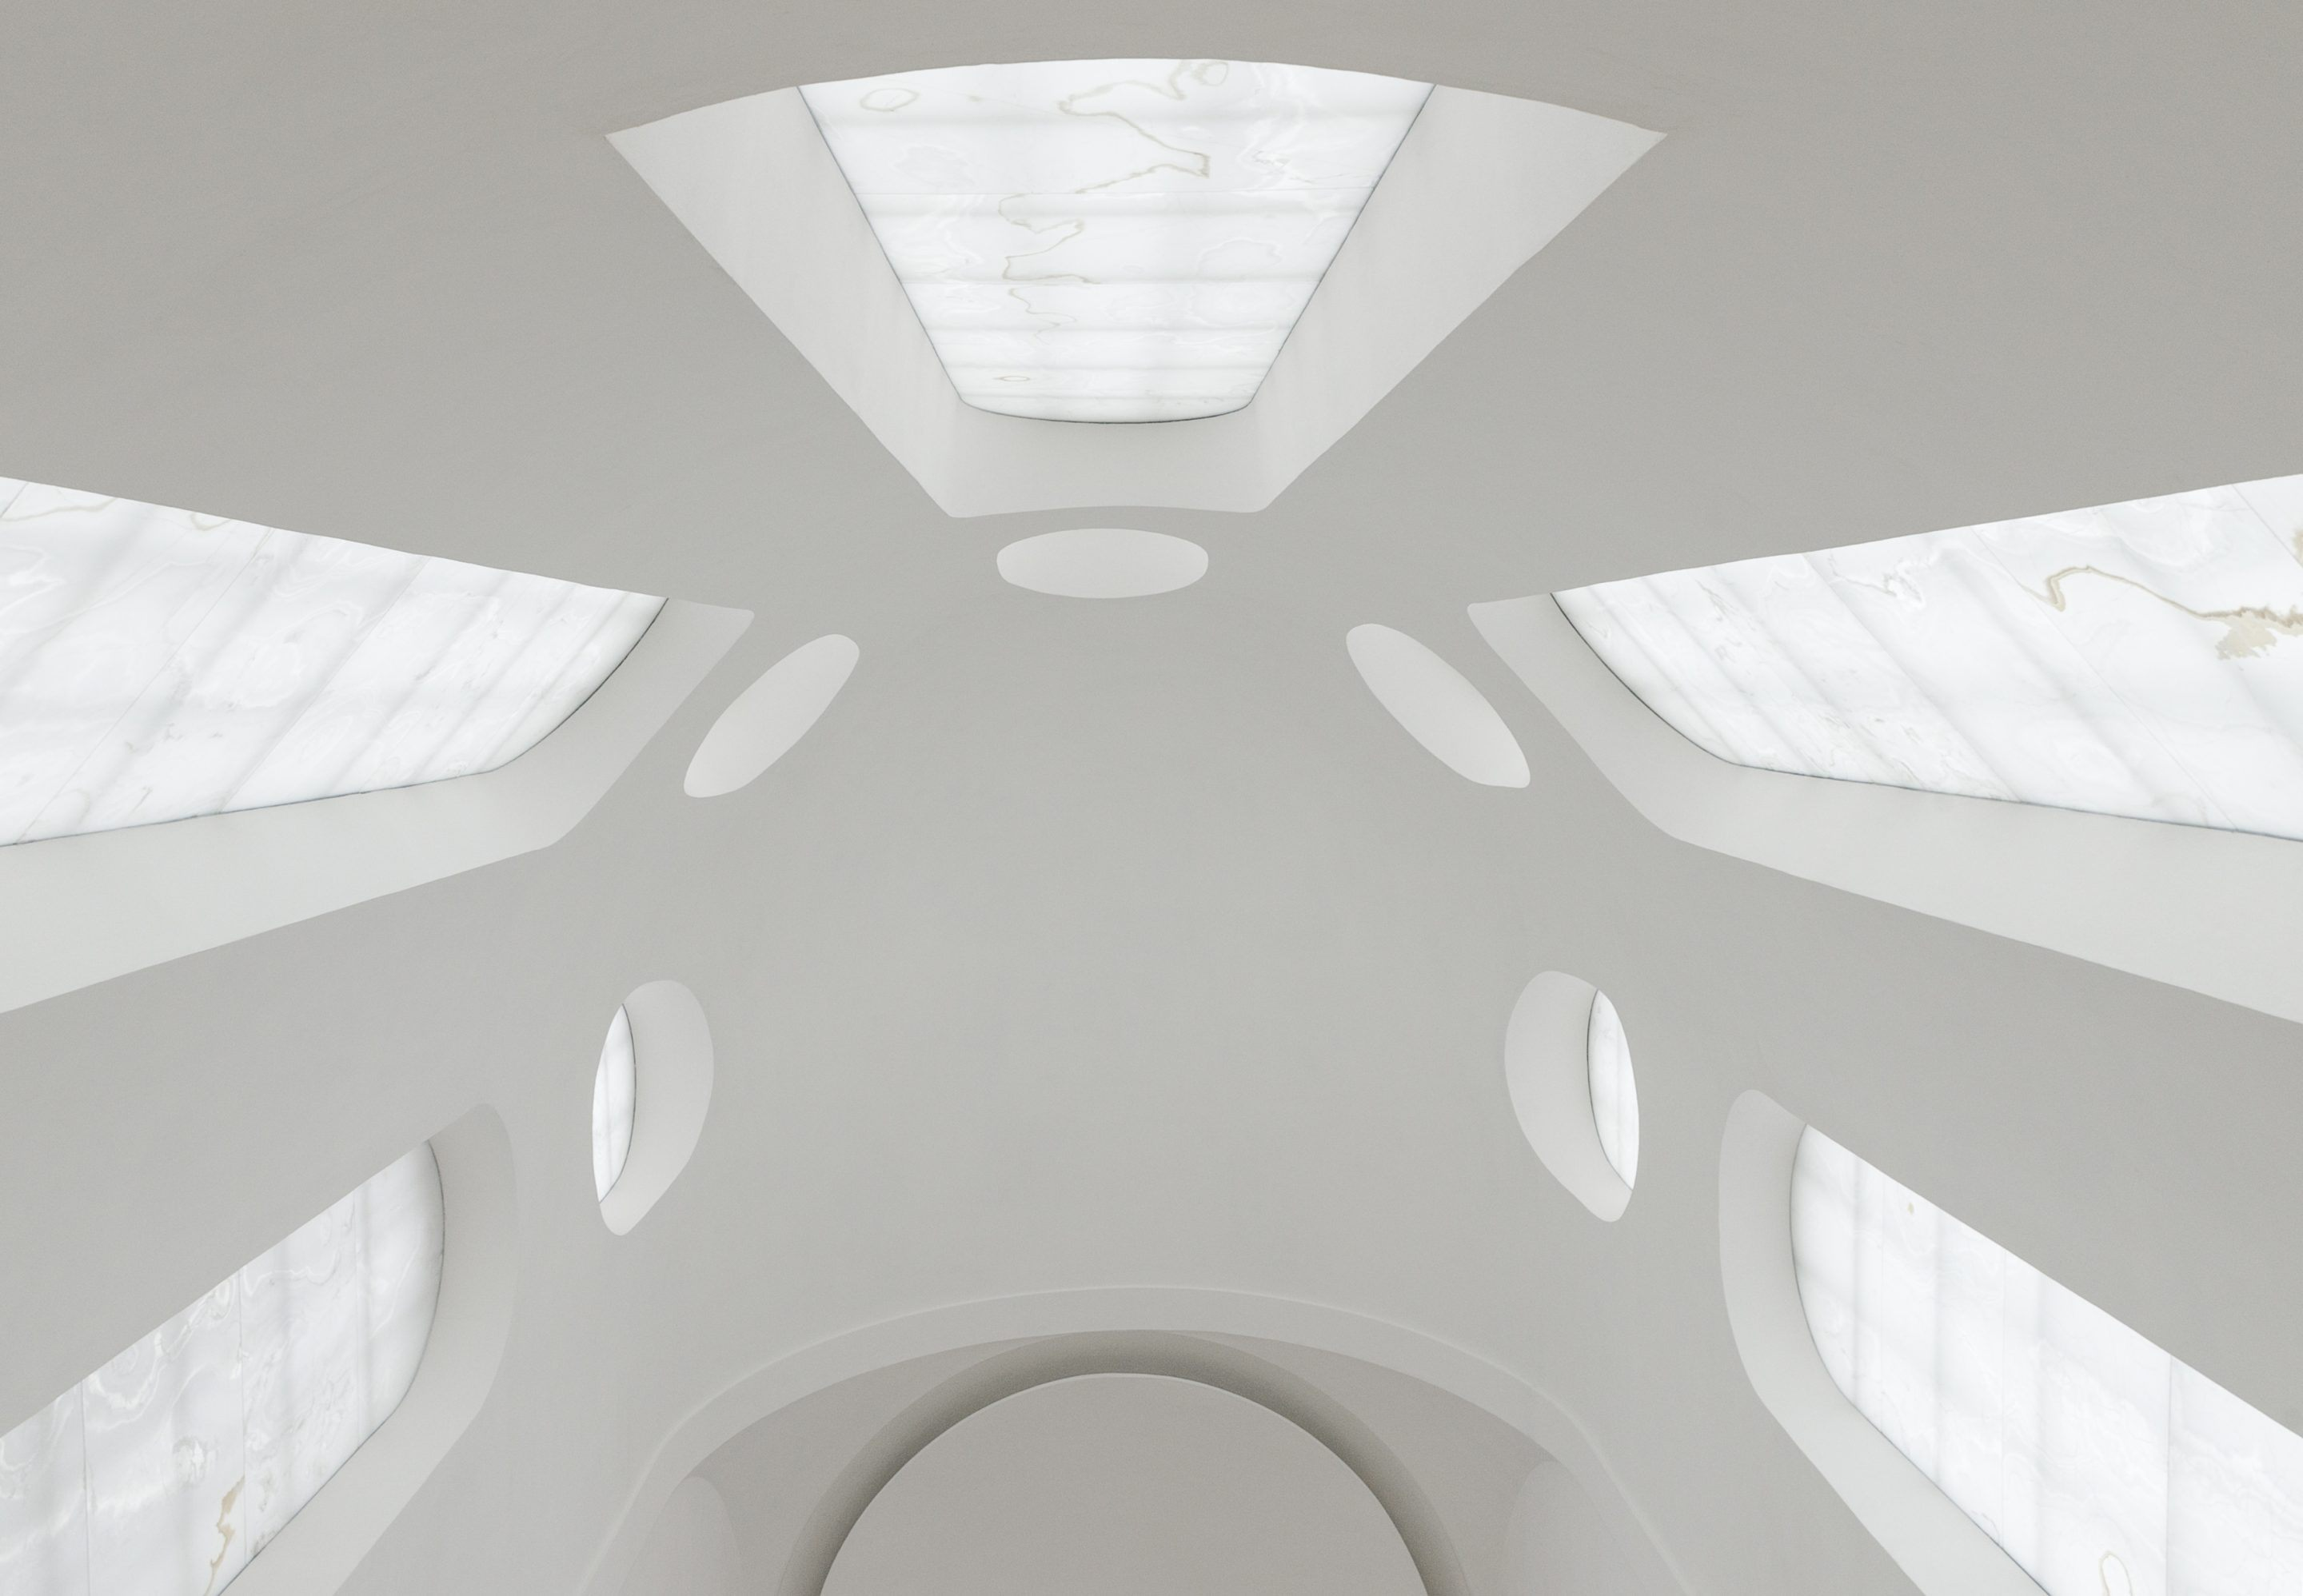 IGNANT-Architecture-John-Pawson-St-Moritz-Church-002